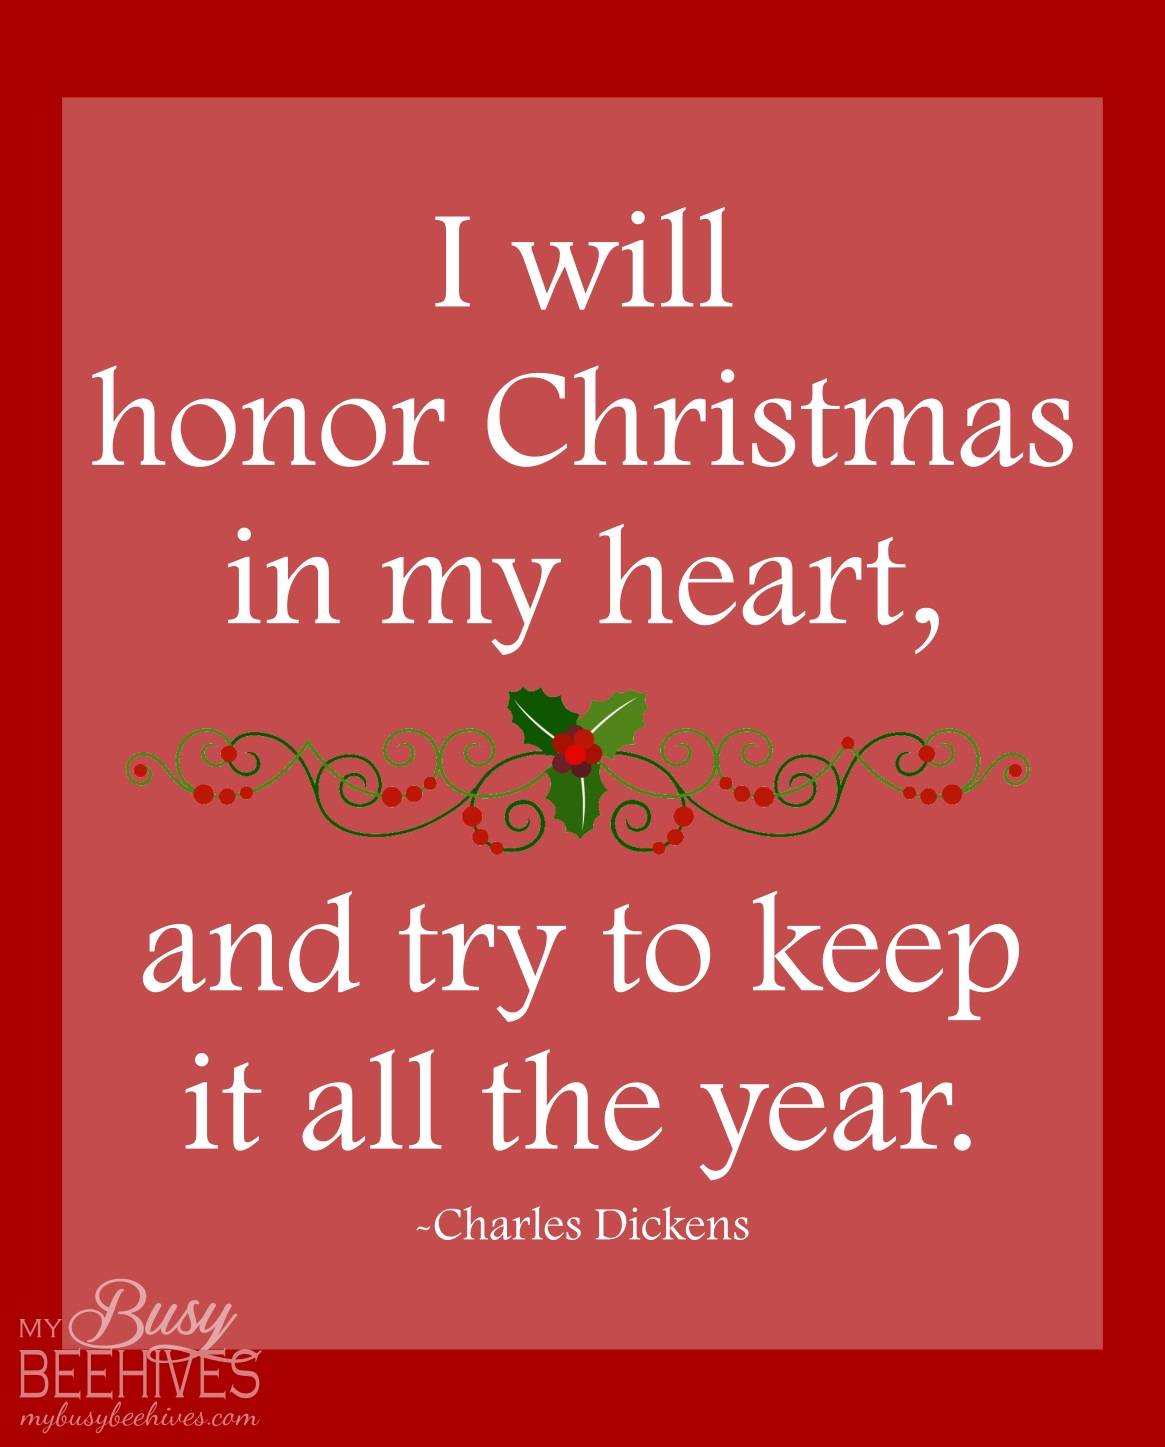 My Busy Beehives...: I Will Honor Christmas in My Heart... {Frame it! Friday}